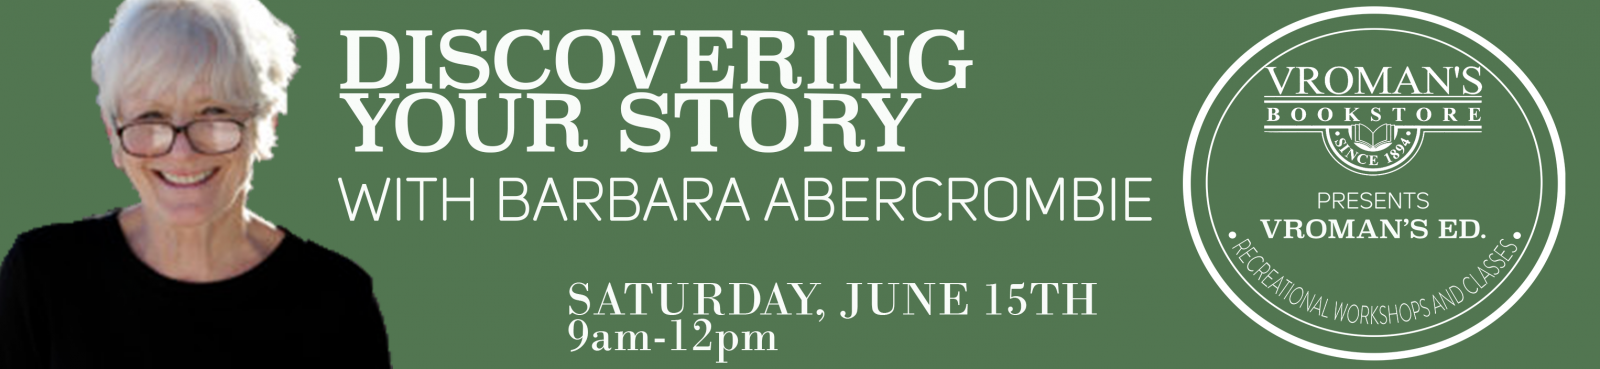 Barbara Abercrombie Writing Workshop Saturday June 15th 9am-12pm